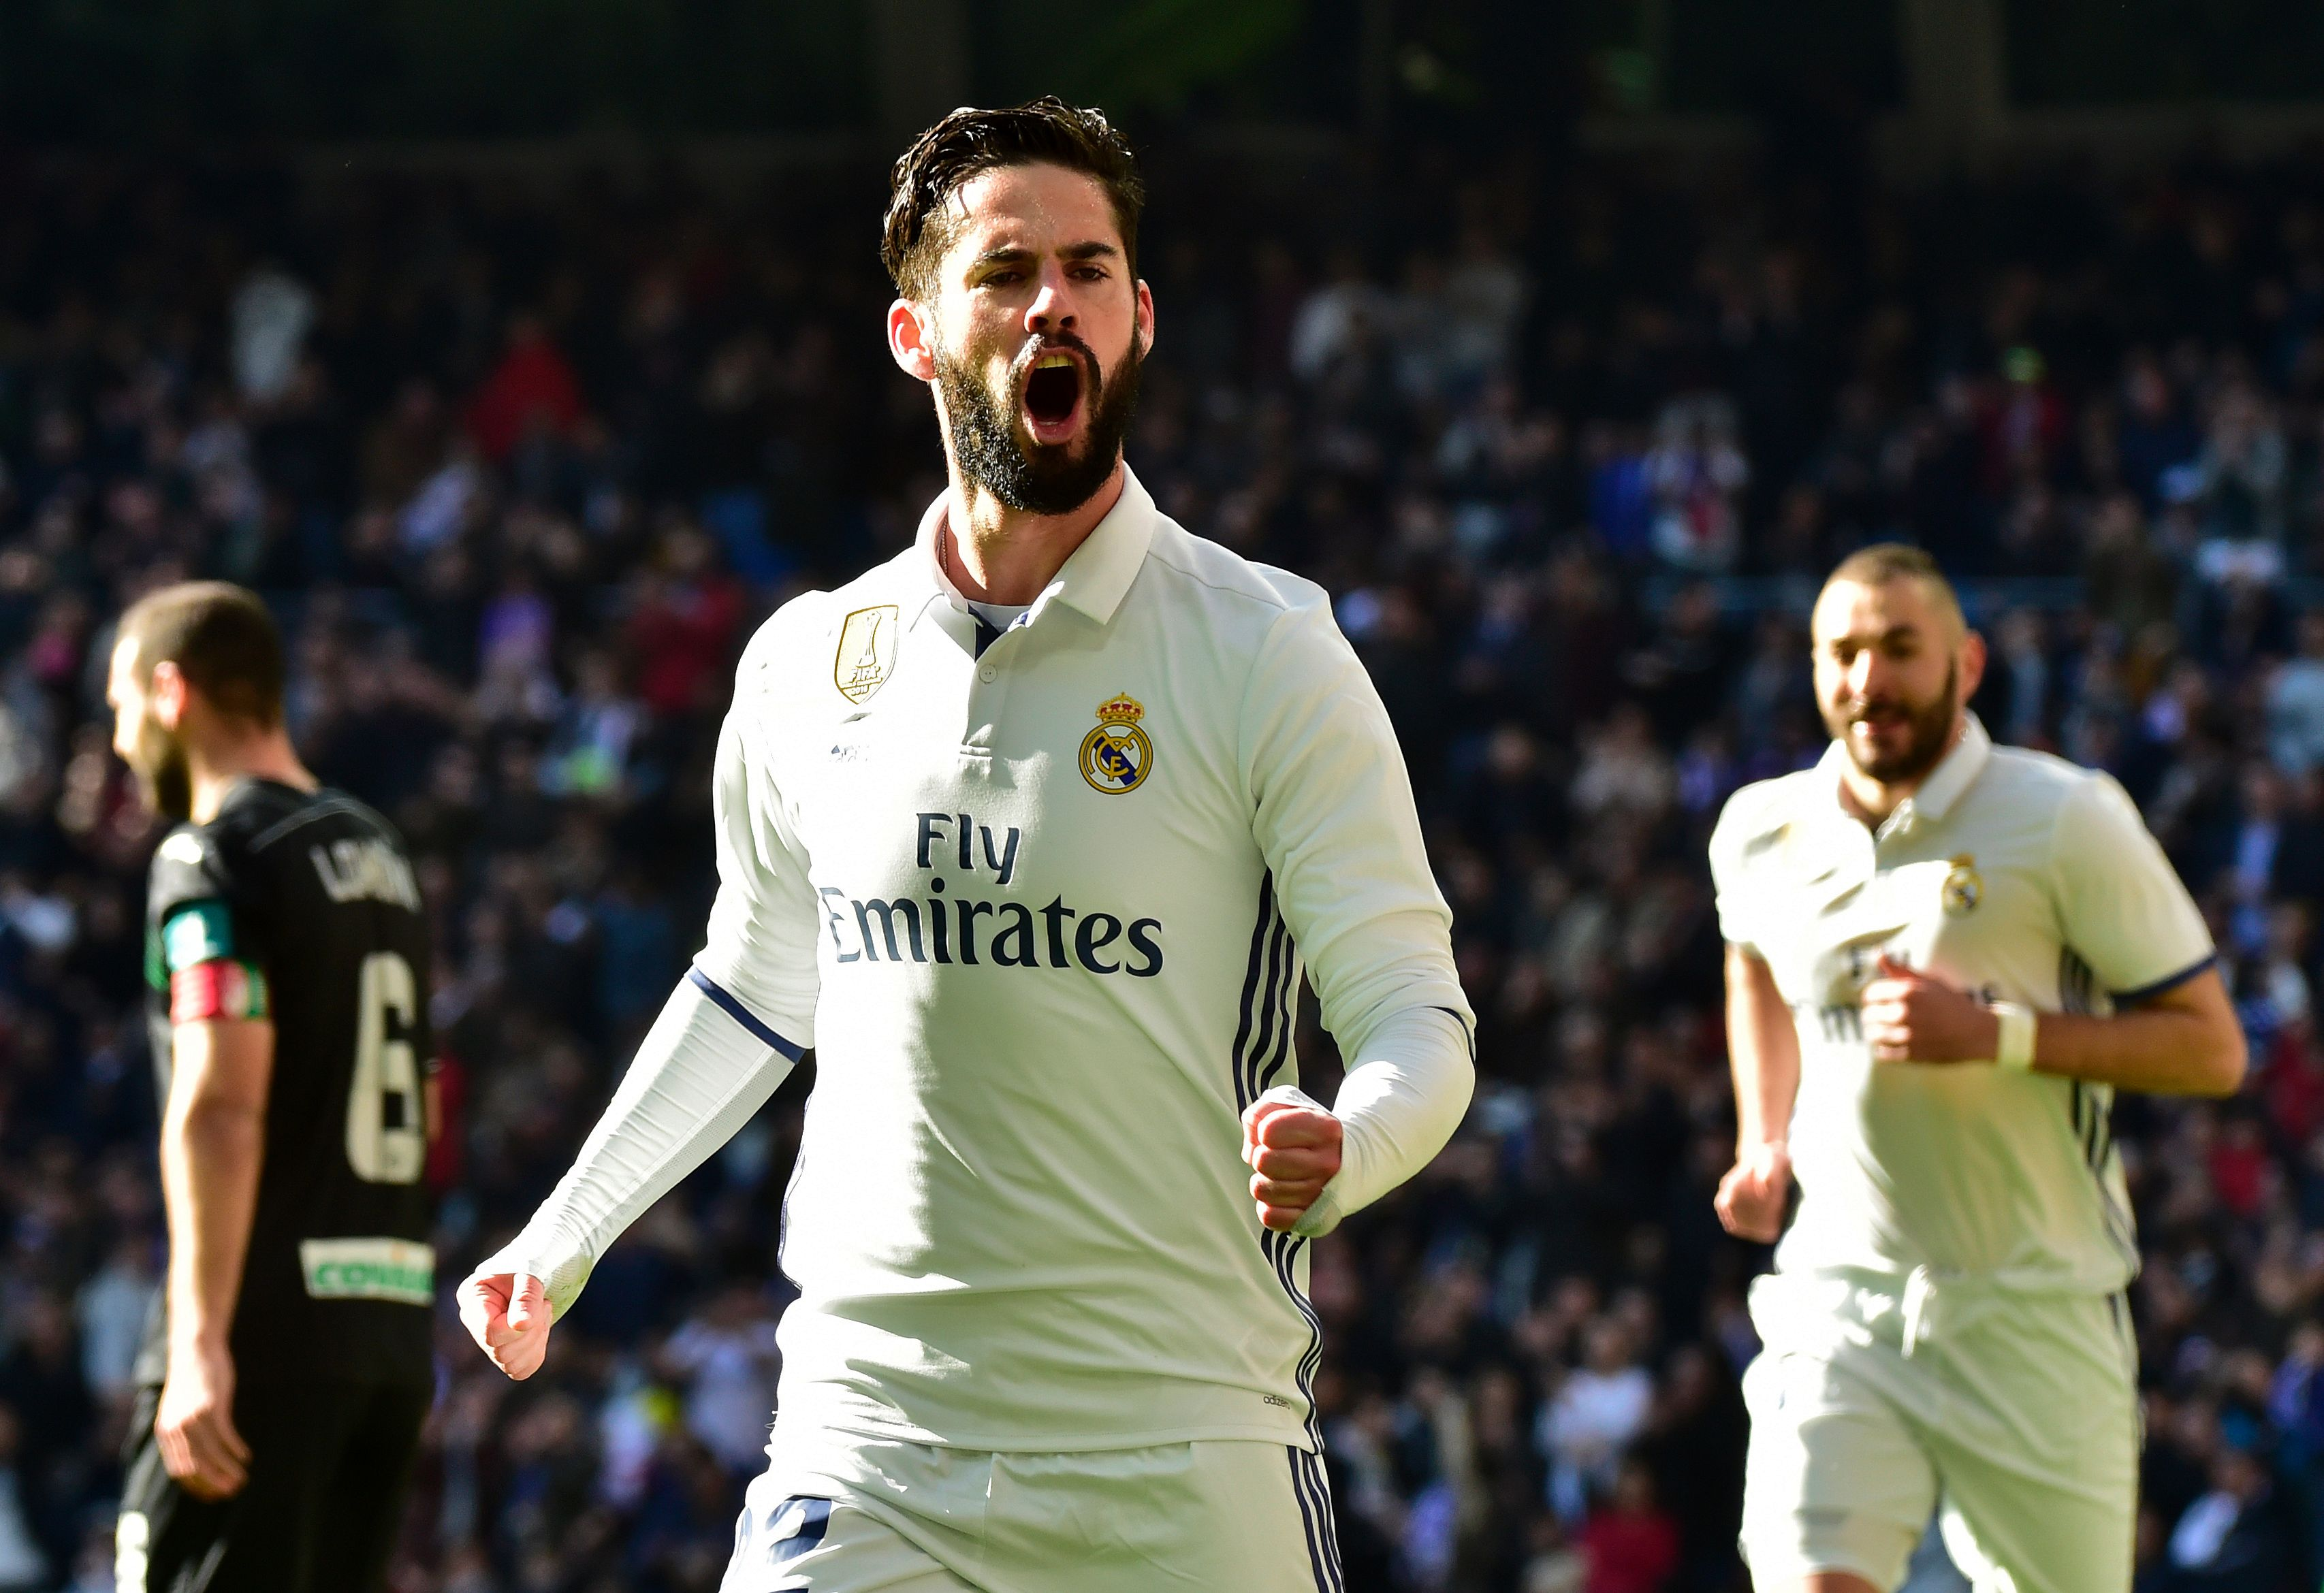 Real Madrid's midfielder Isco celebrates after scoring during the Spanish league football match Real Madrid CF vs Granada FC at the Santiago Bernabeu stadium in Madrid on January 7, 2017. / AFP / GERARD JULIEN (Photo credit should read GERARD JULIEN/AFP/Getty Images)